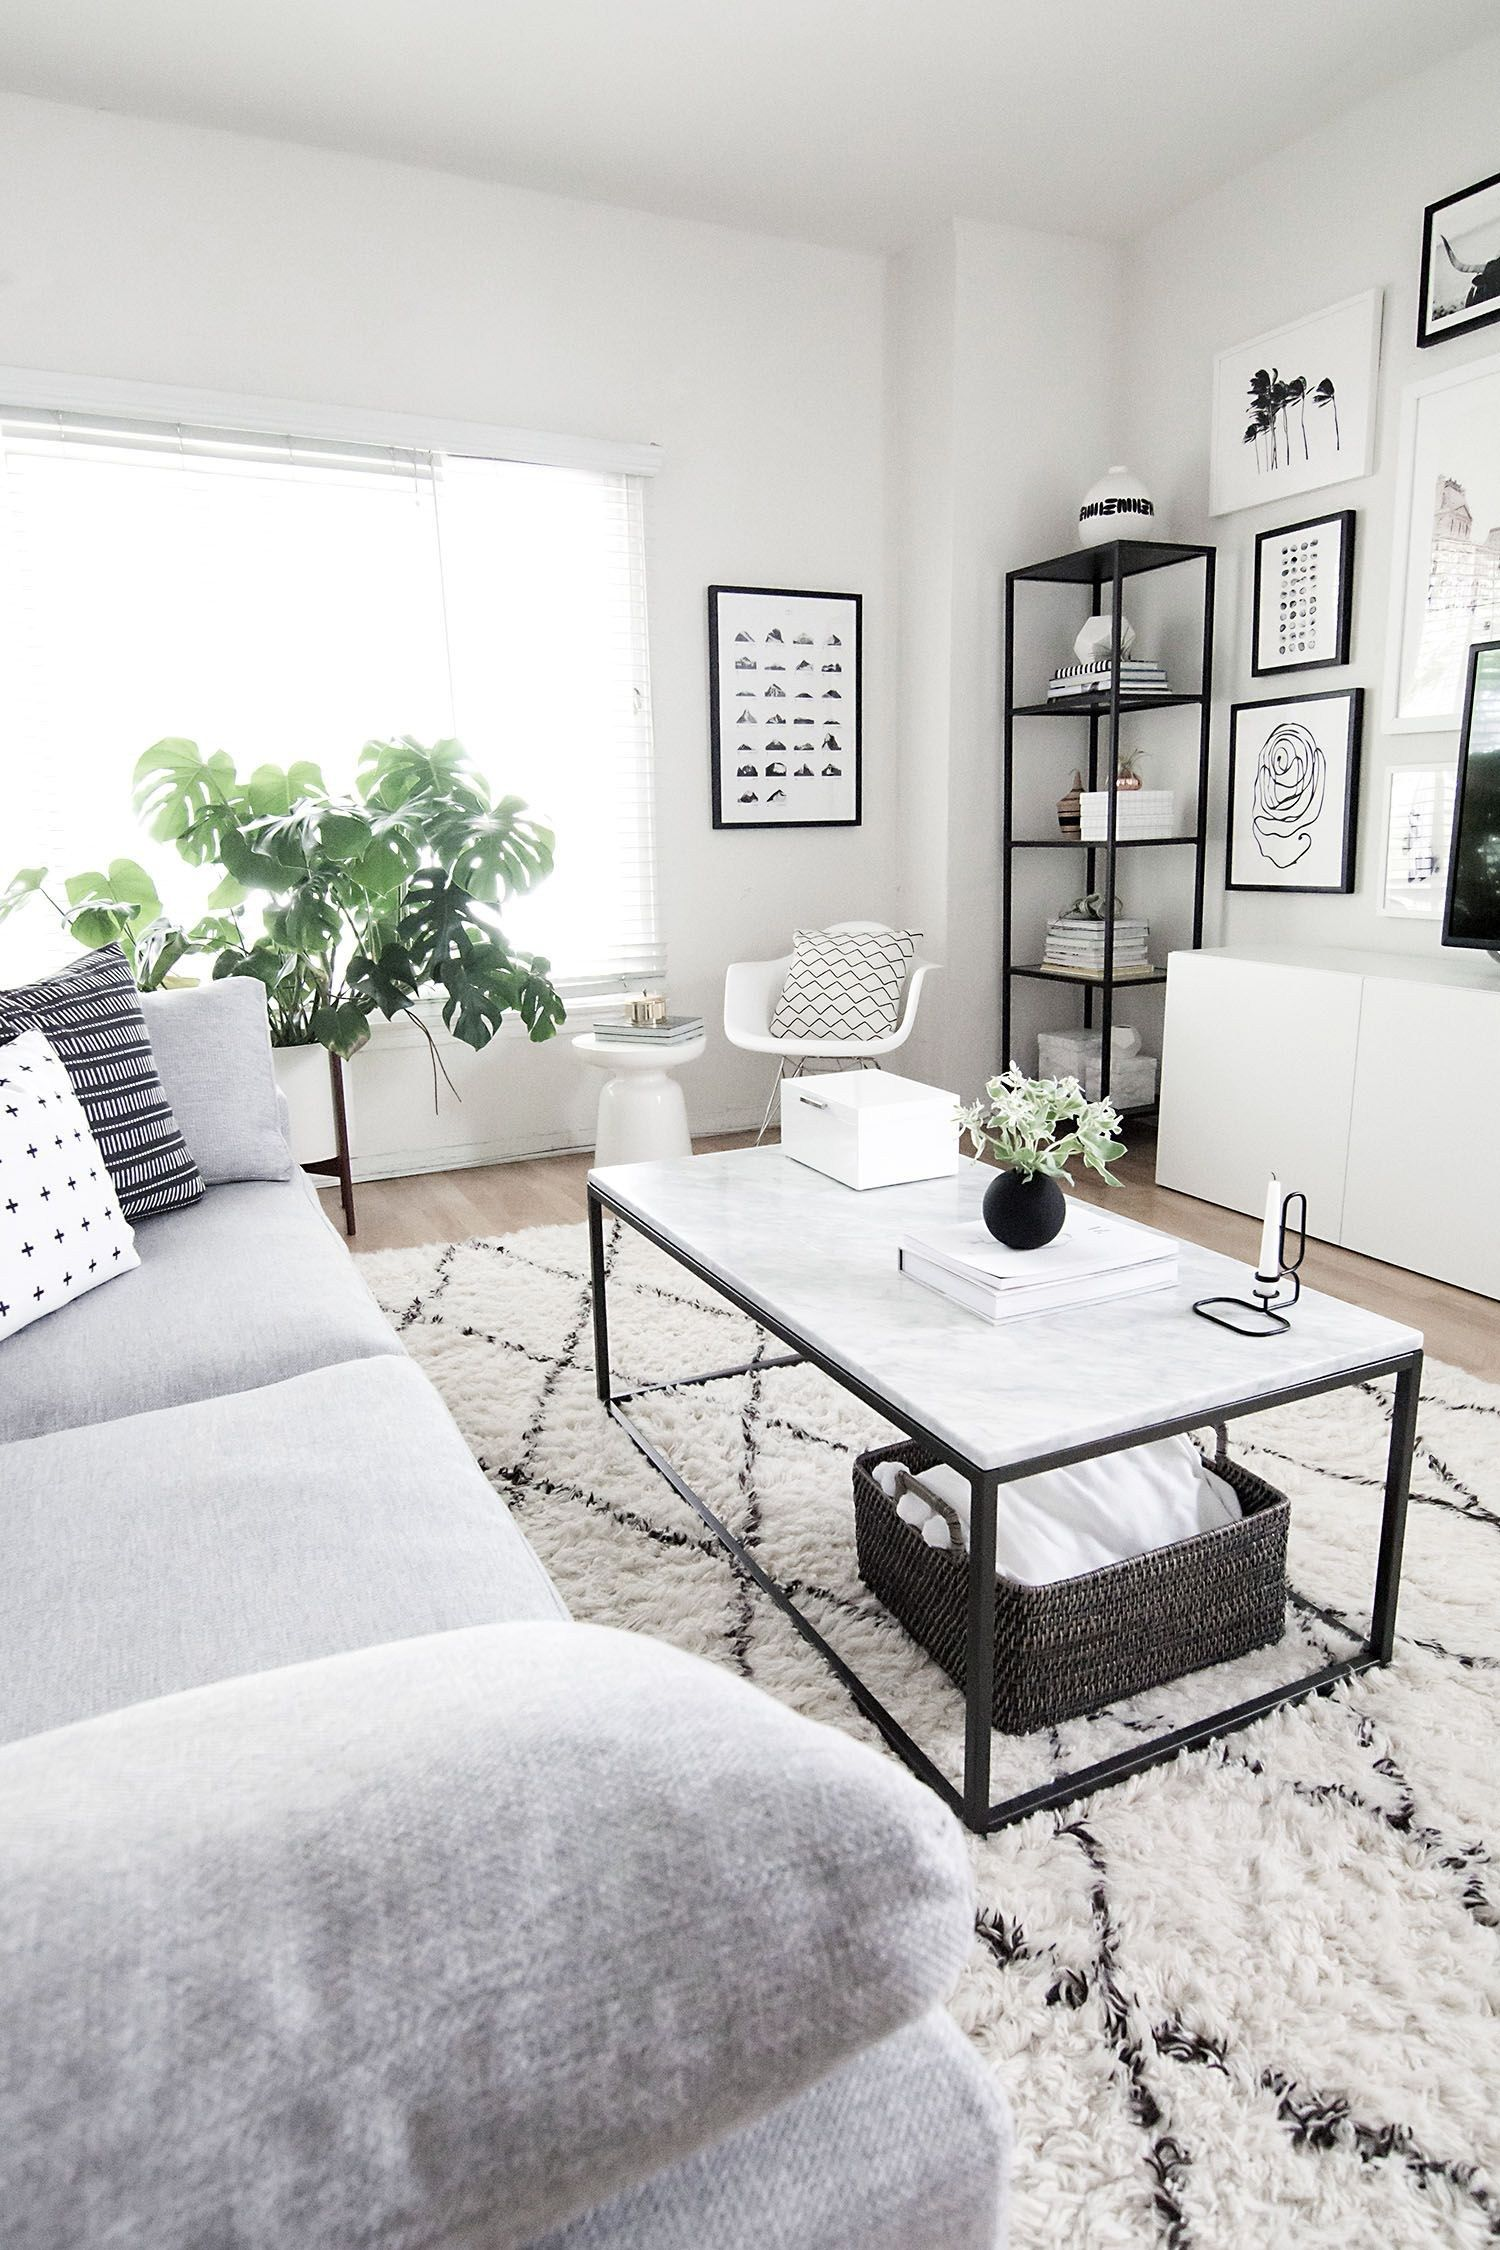 30 Flat Decoration Ideas With High Street Design Aesthetic